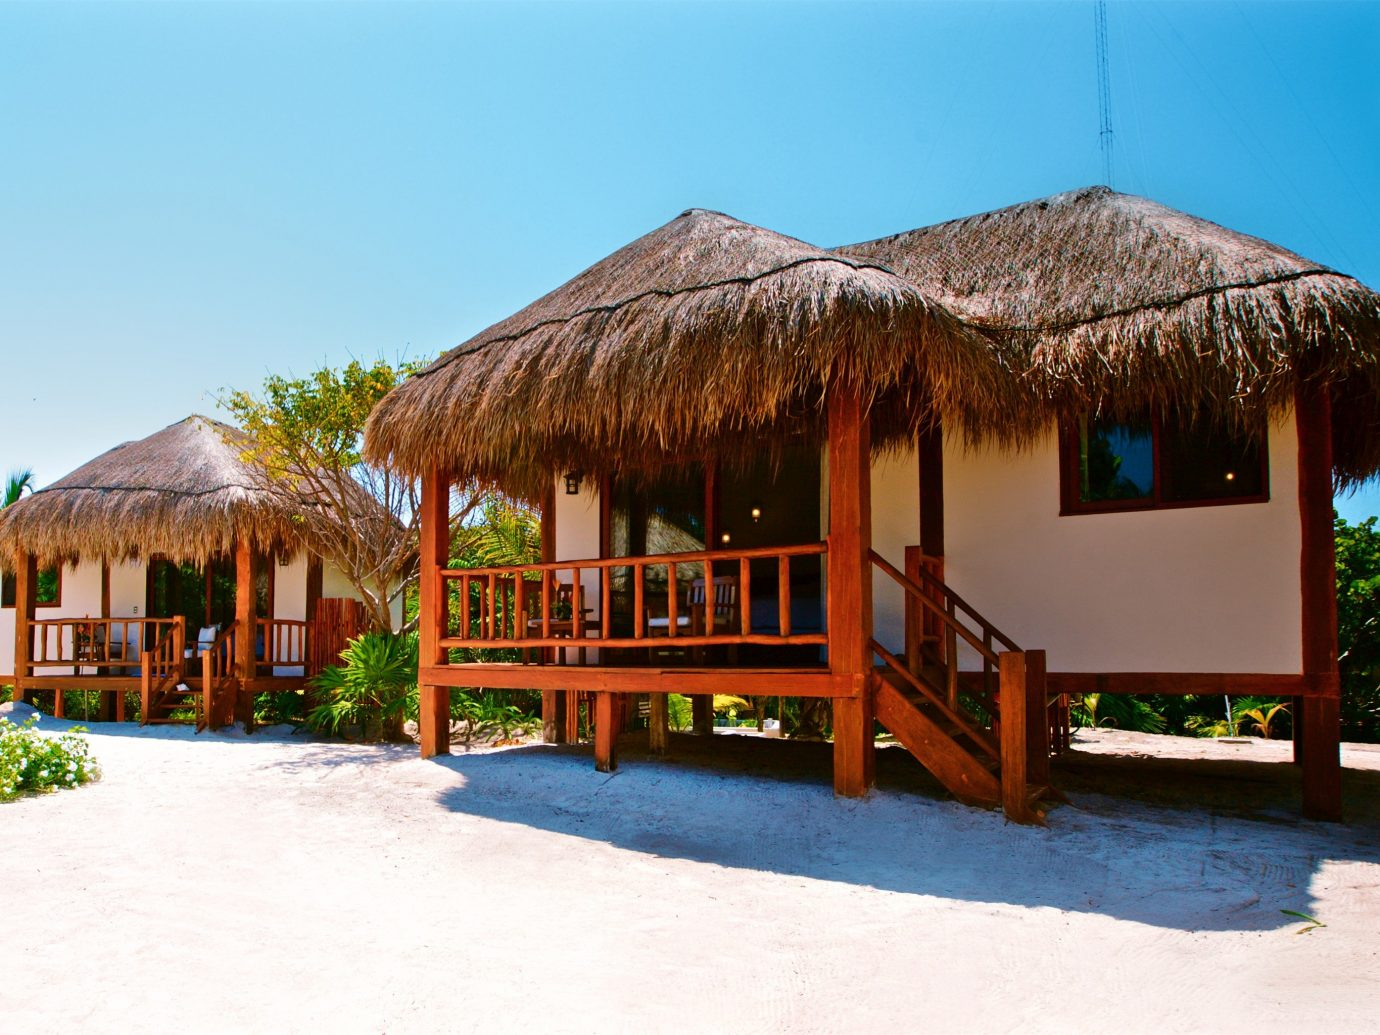 Boutique Hotels Hotels Mexico Tulum Resort property hut real estate cottage gazebo estate leisure Villa arecales home house hacienda palm tree vacation outdoor structure eco hotel roof